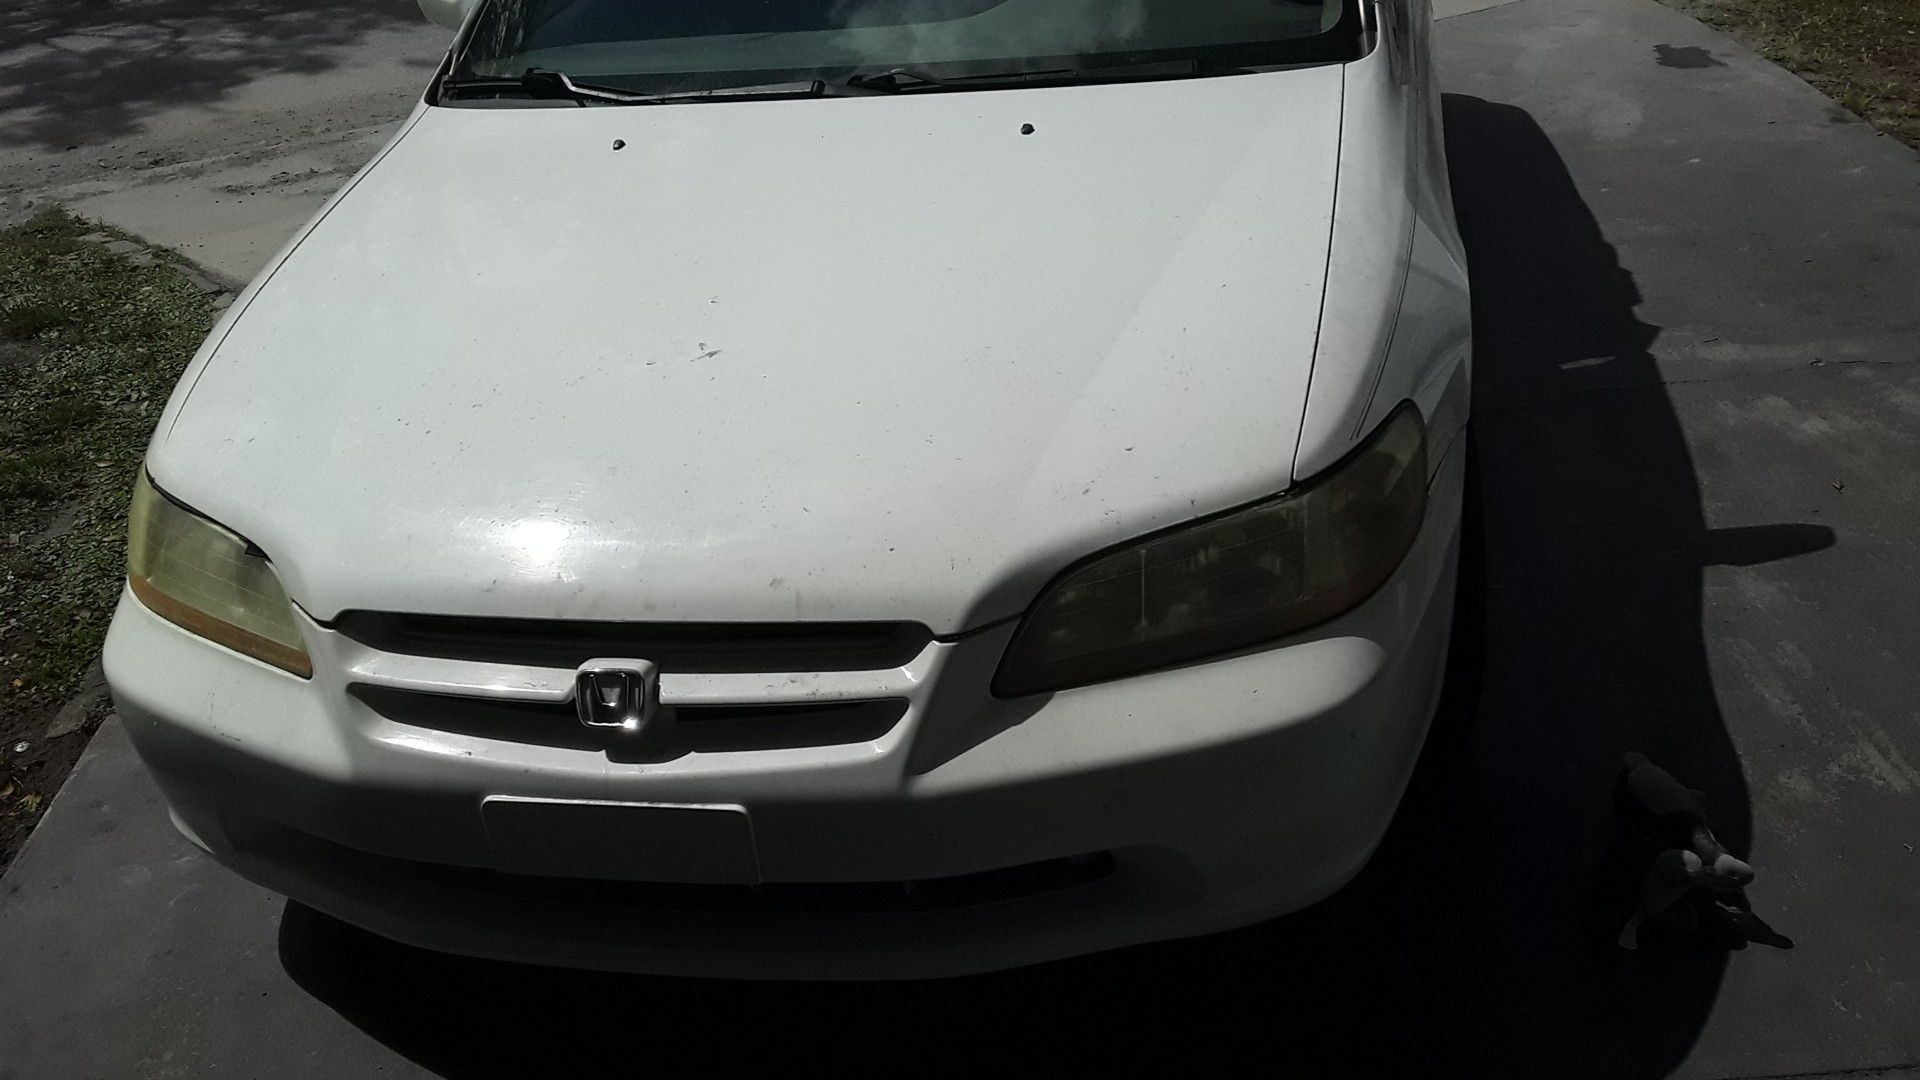 Need the money for now just got a tire damage and need batery but yhe other things are good